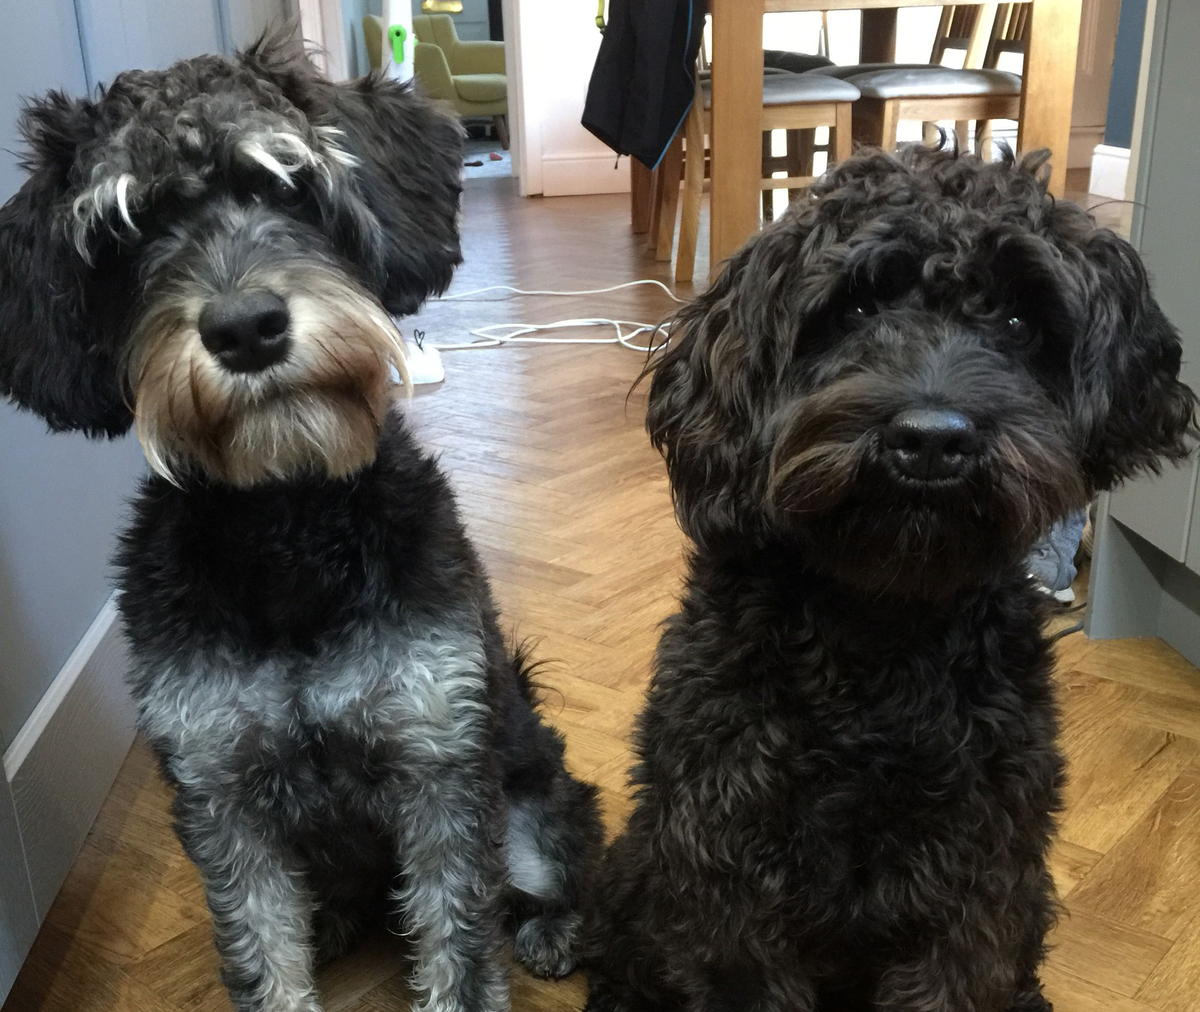 Two Schnoodle dogs named Tilly and Winston